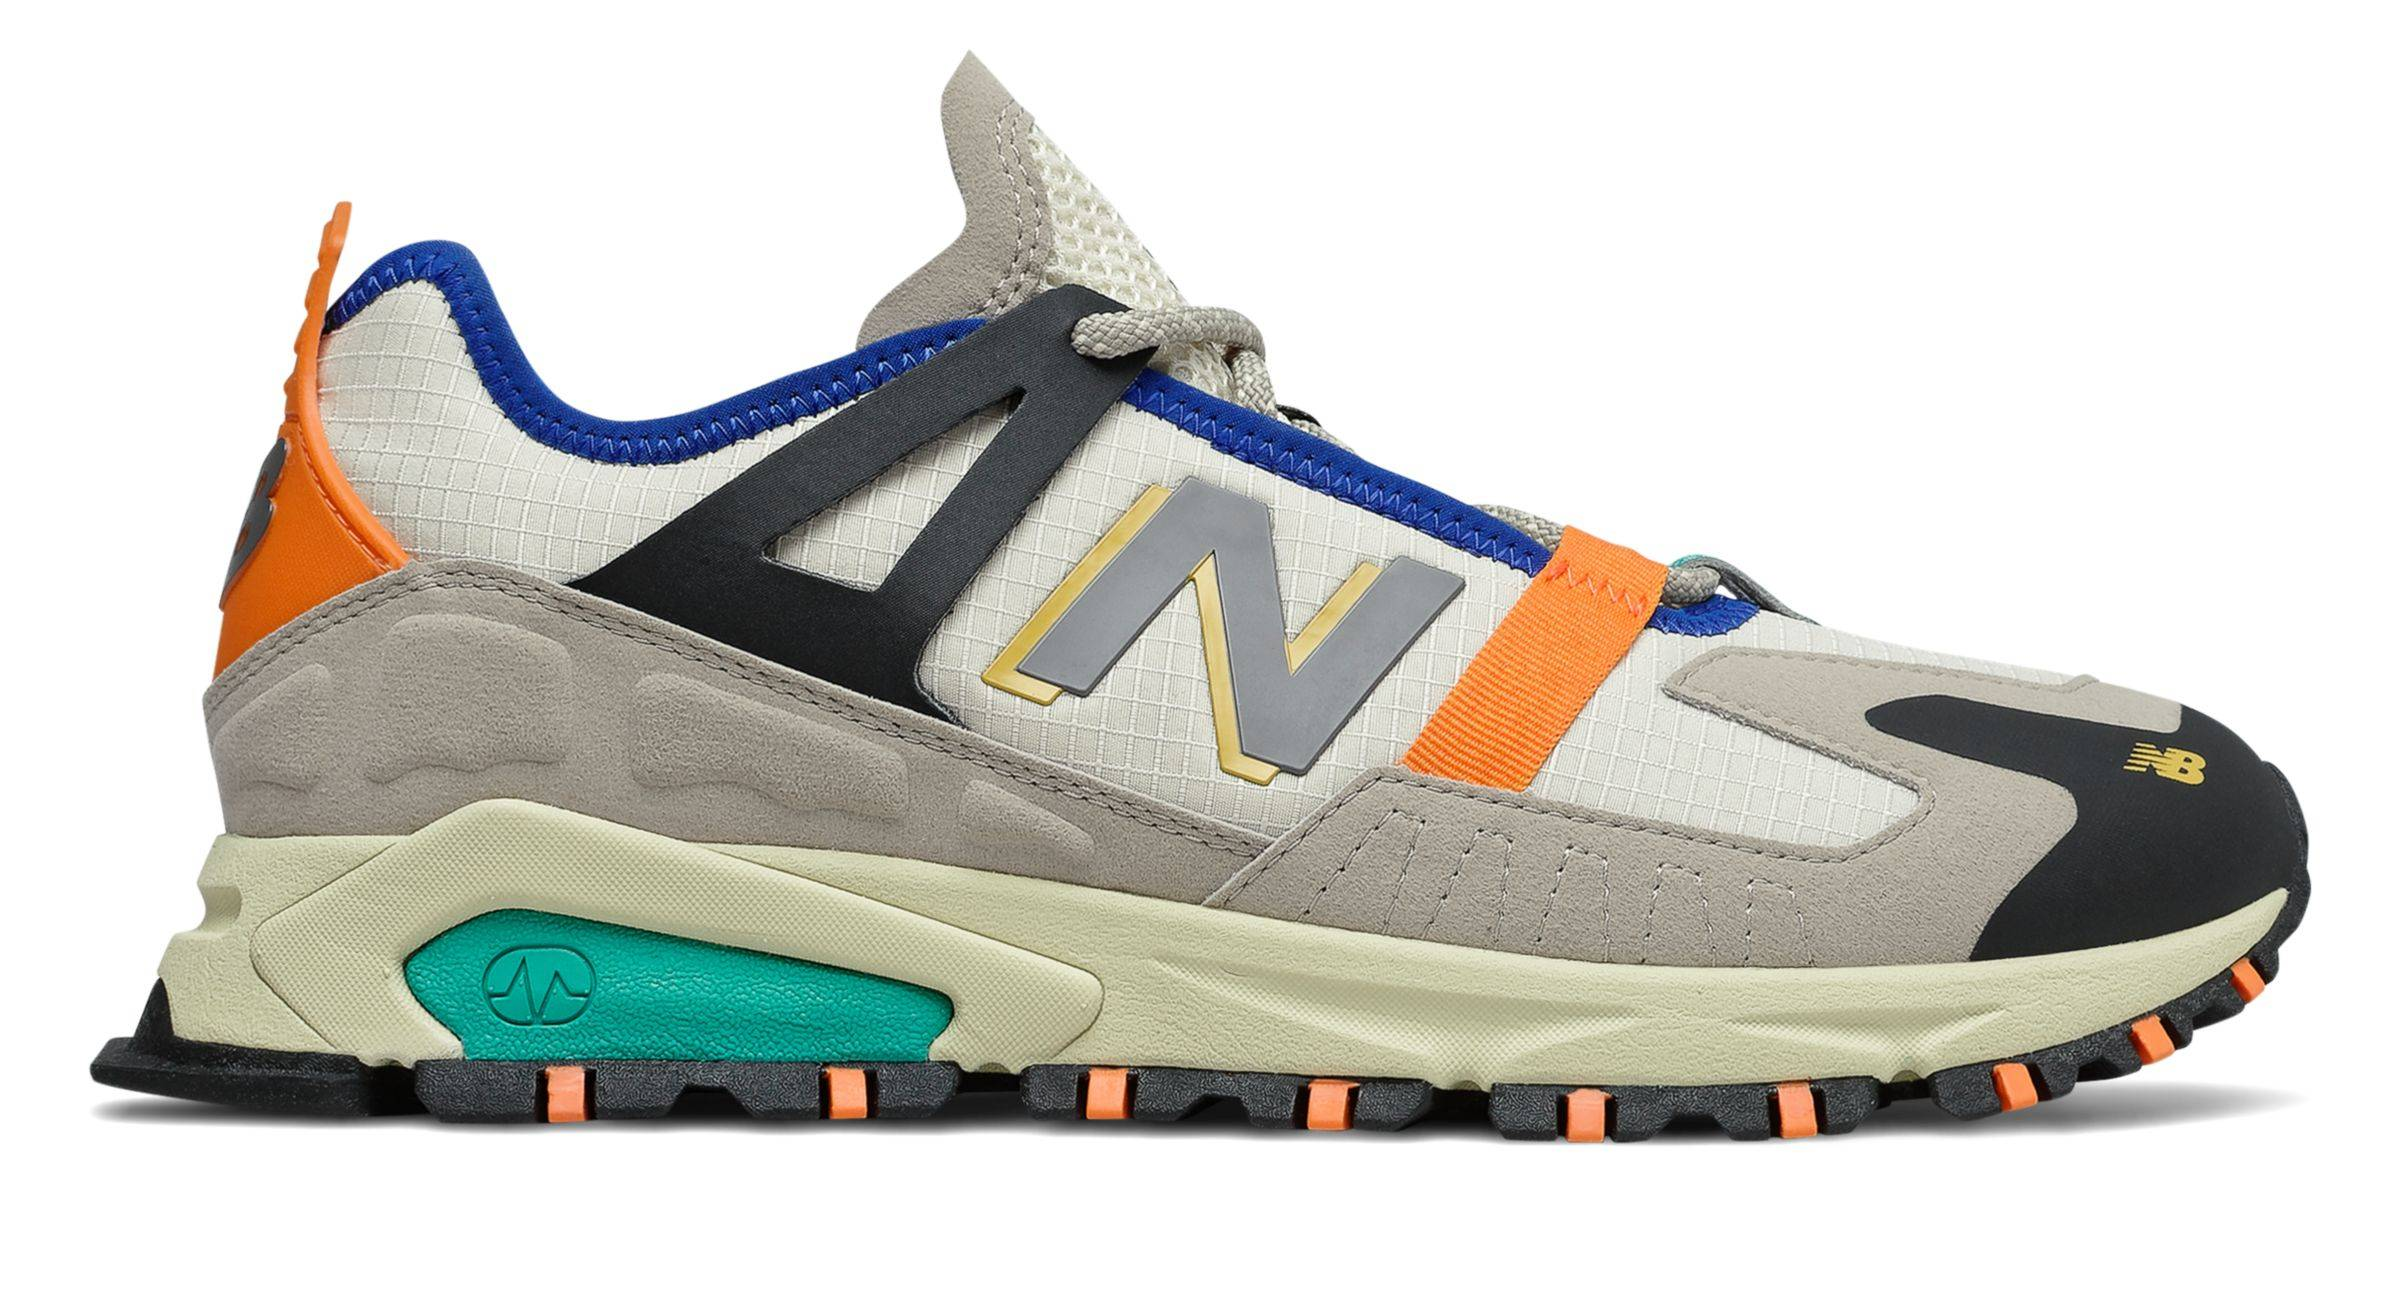 New Balance Men's XRCT Shoes Grey with Green  - Grey with Green - Size: 9.5